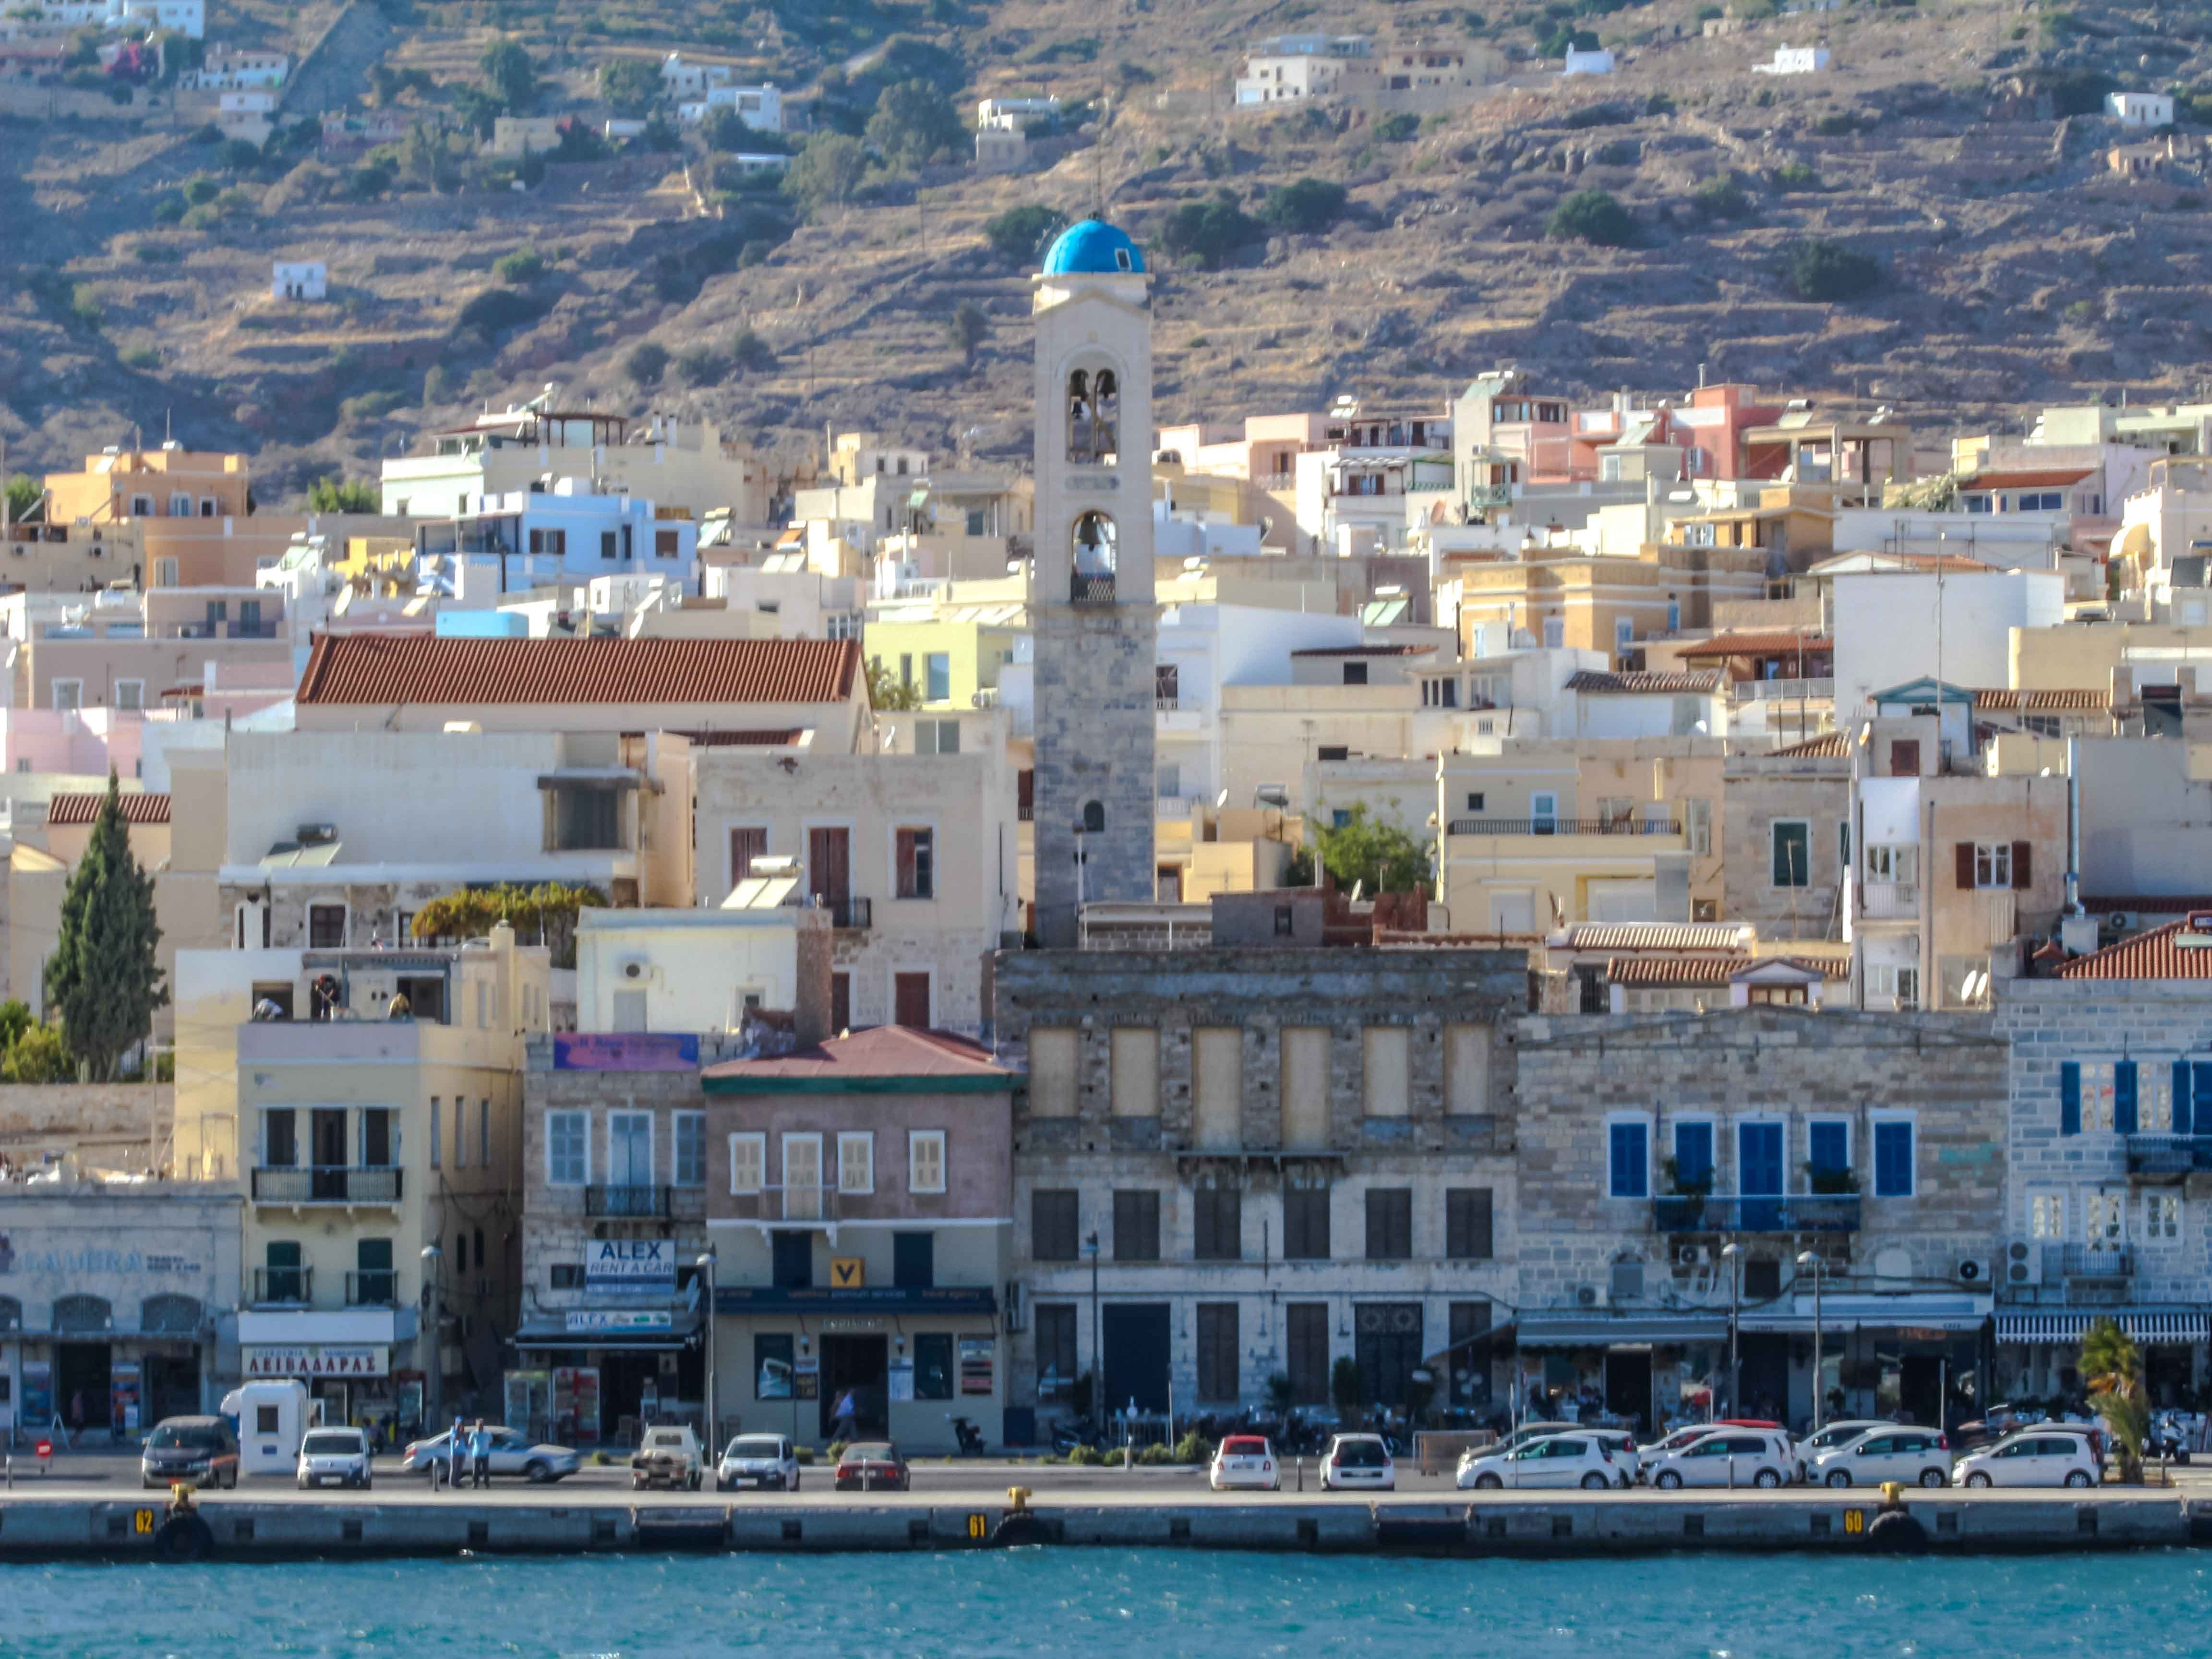 Syros is one of the smallest islands in the Cyclades. When you enter from the sea, you'll notice the neoclassical architecture of the bustling port town of Ermoupolis. If you arrive in the evening, the city sparkles with bright lights.